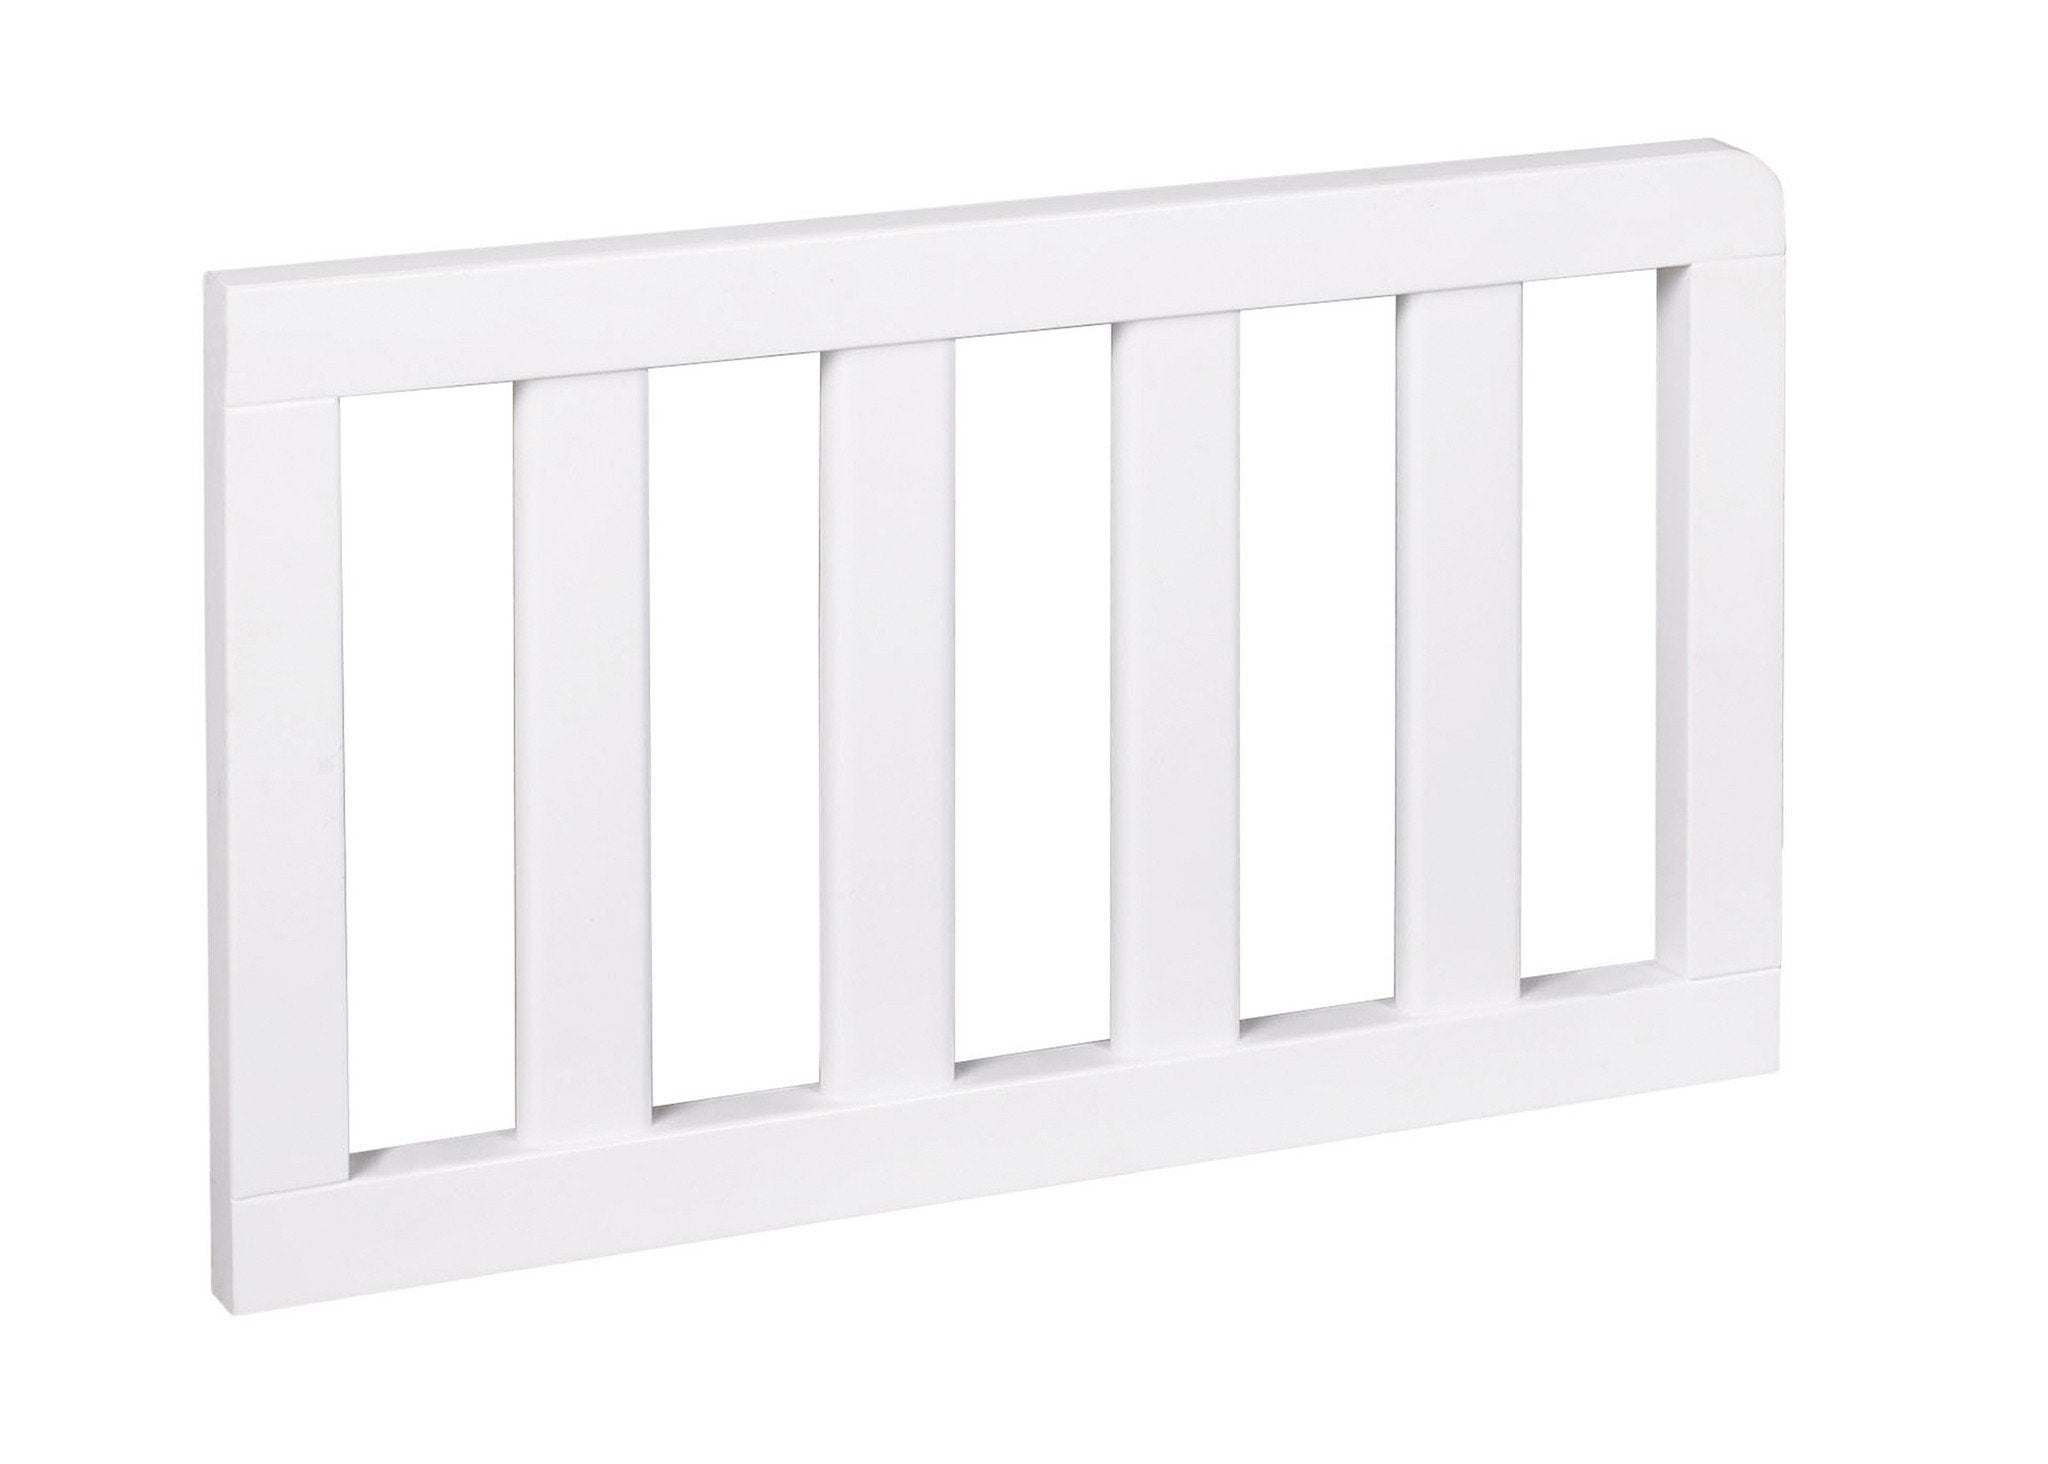 Simmons Kids White (100) Toddler Guardrail (180119) Side View b1b